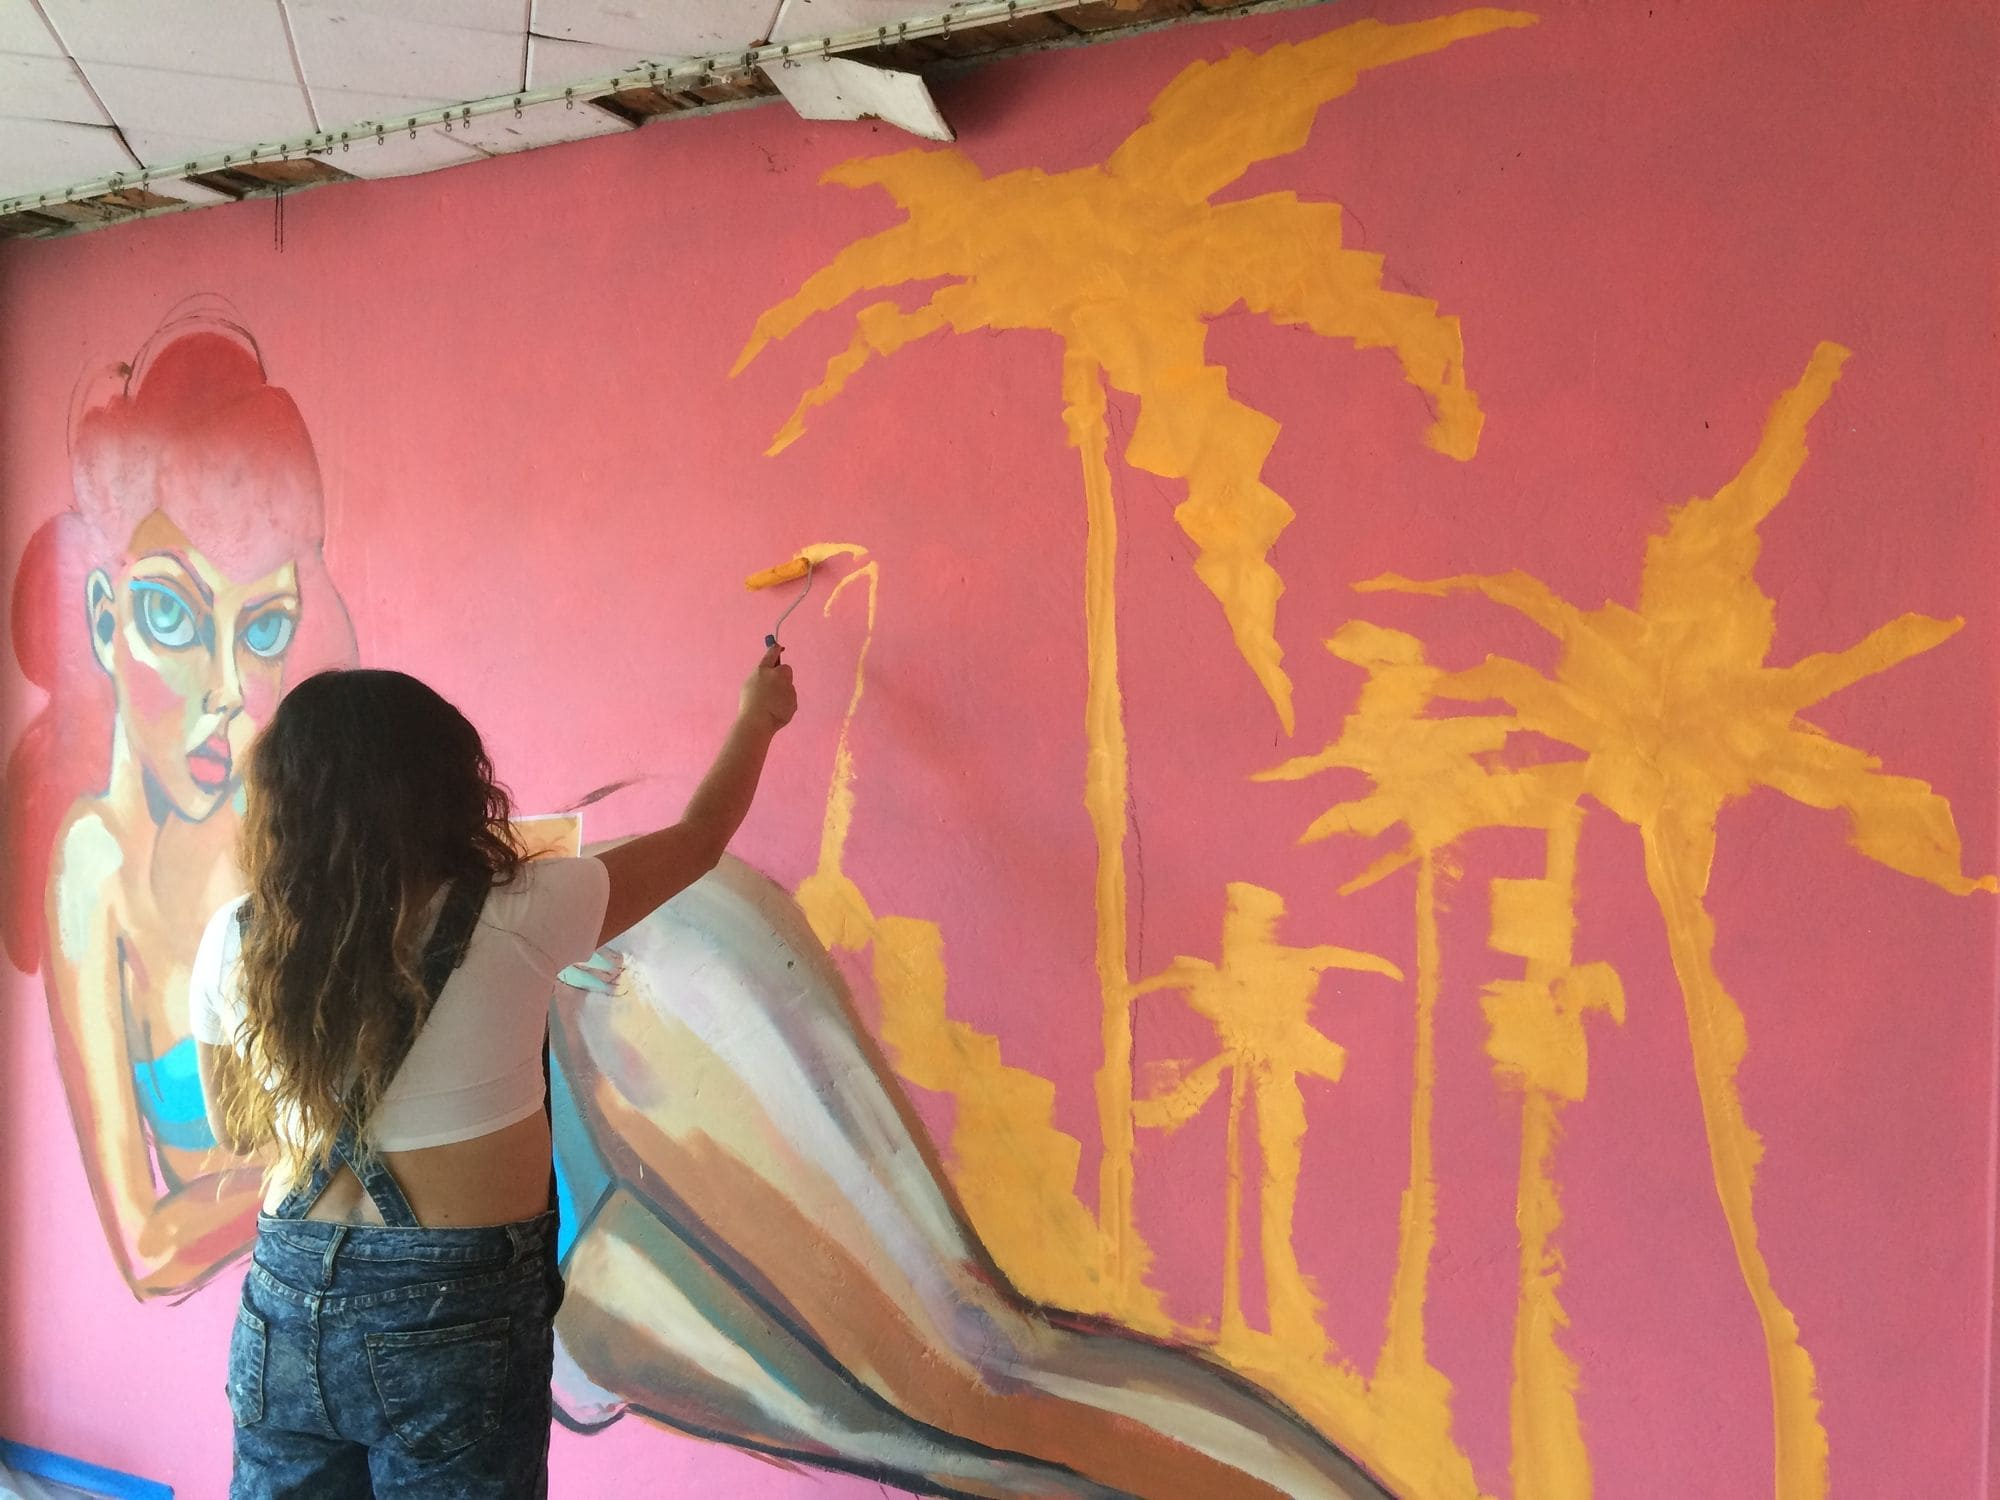 Artist Diana Contreras painting a mural in Fort Lauderdale